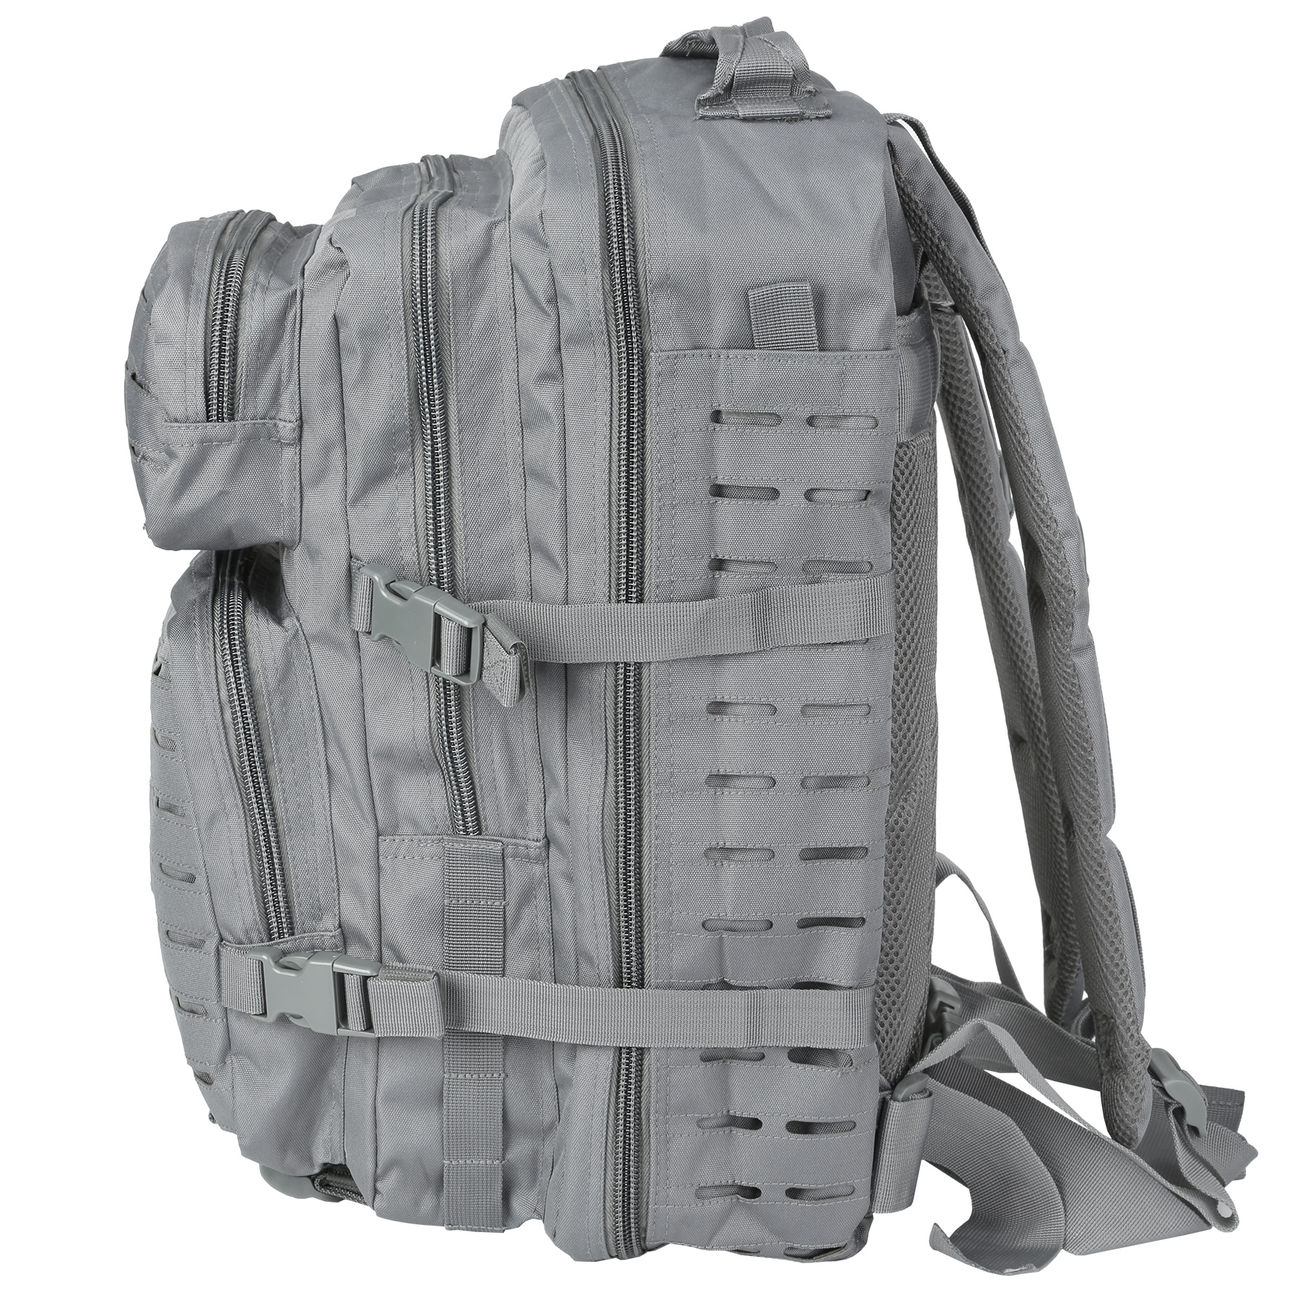 Mil-Tec Rucksack US Assault Pack Laser Cut large 36L Urban grey 2